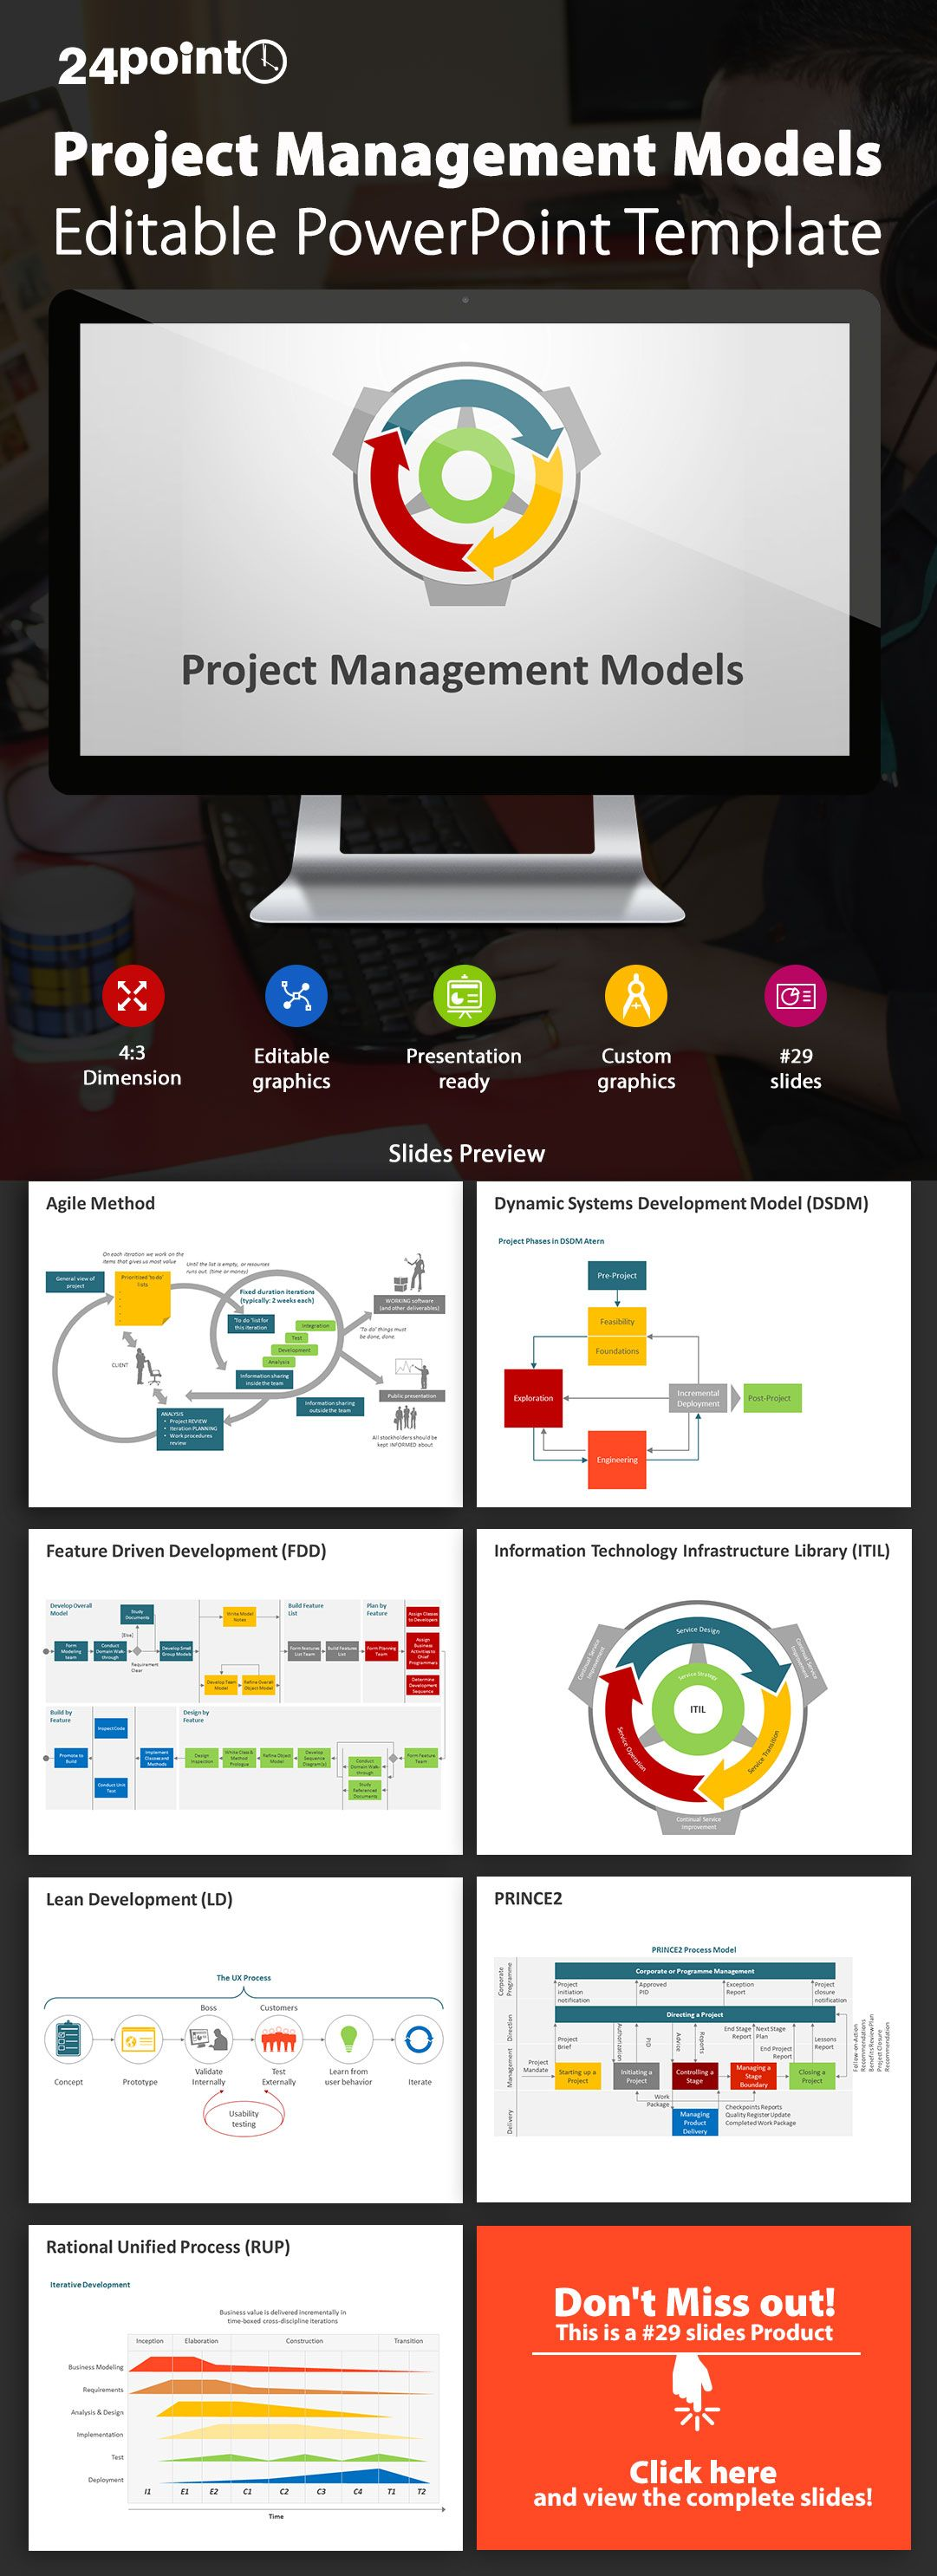 Editable powerpoint templates slides designs project management editable powerpoint templates slides designs project management models toneelgroepblik Image collections